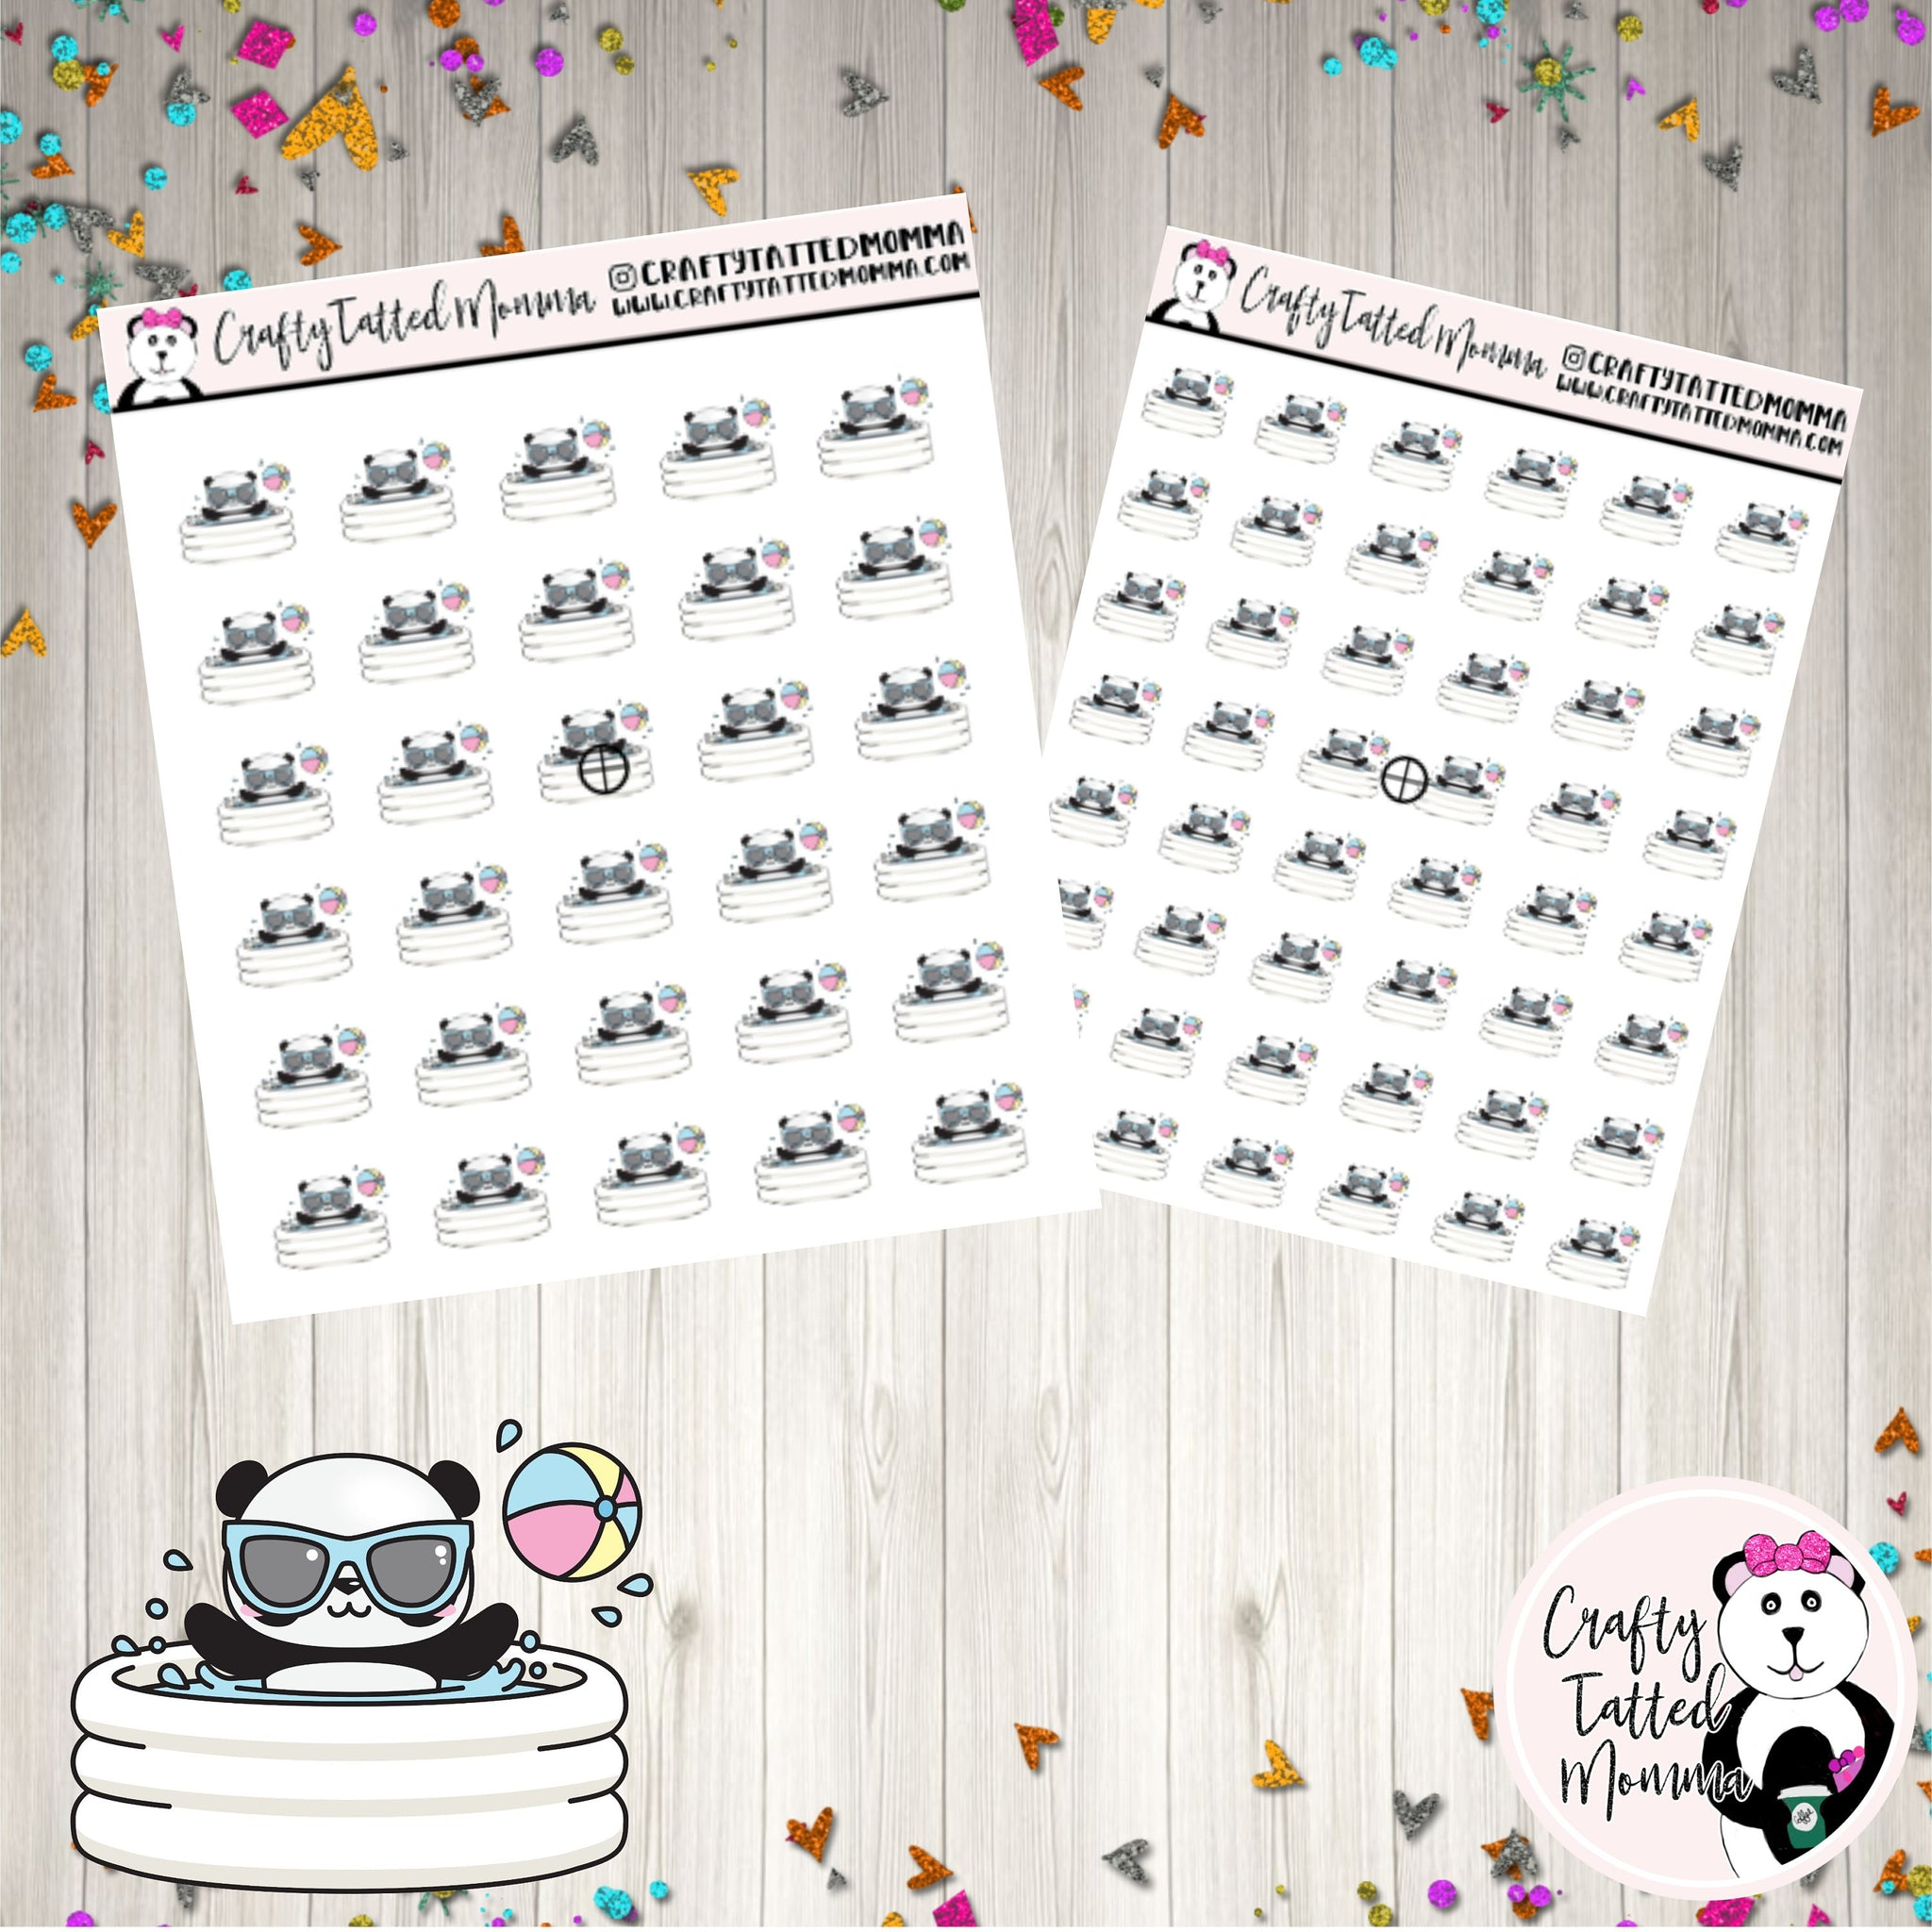 Zoe Swimming   Panda Stickers   Planner Stickers   Character Stickers   Zoe the Panda   Functional Stickers   Pool day   Pool Stickers   Summer